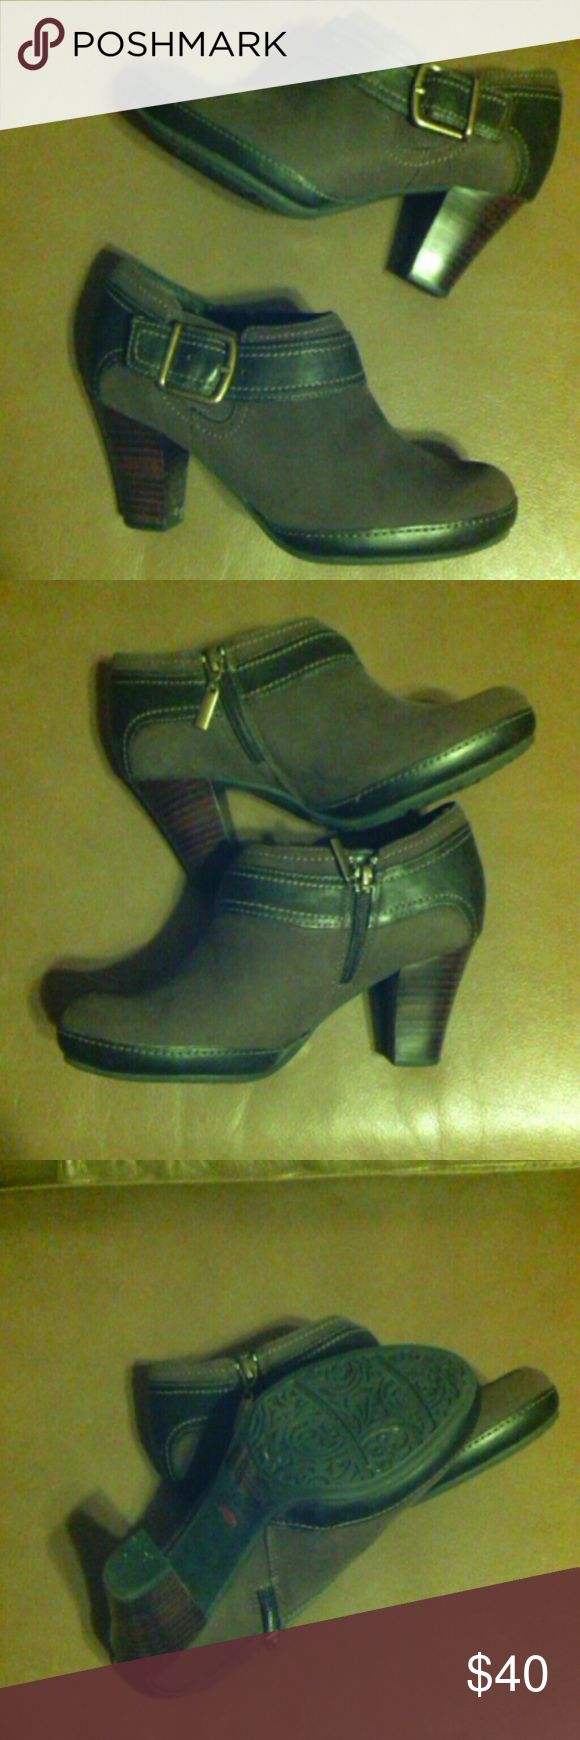 """Clarks Artisan brown leather ankle boots bootie 6 EUC,buckle & zipper, 2.5"""" stack heel Clarks Shoes Ankle Boots & Booties"""